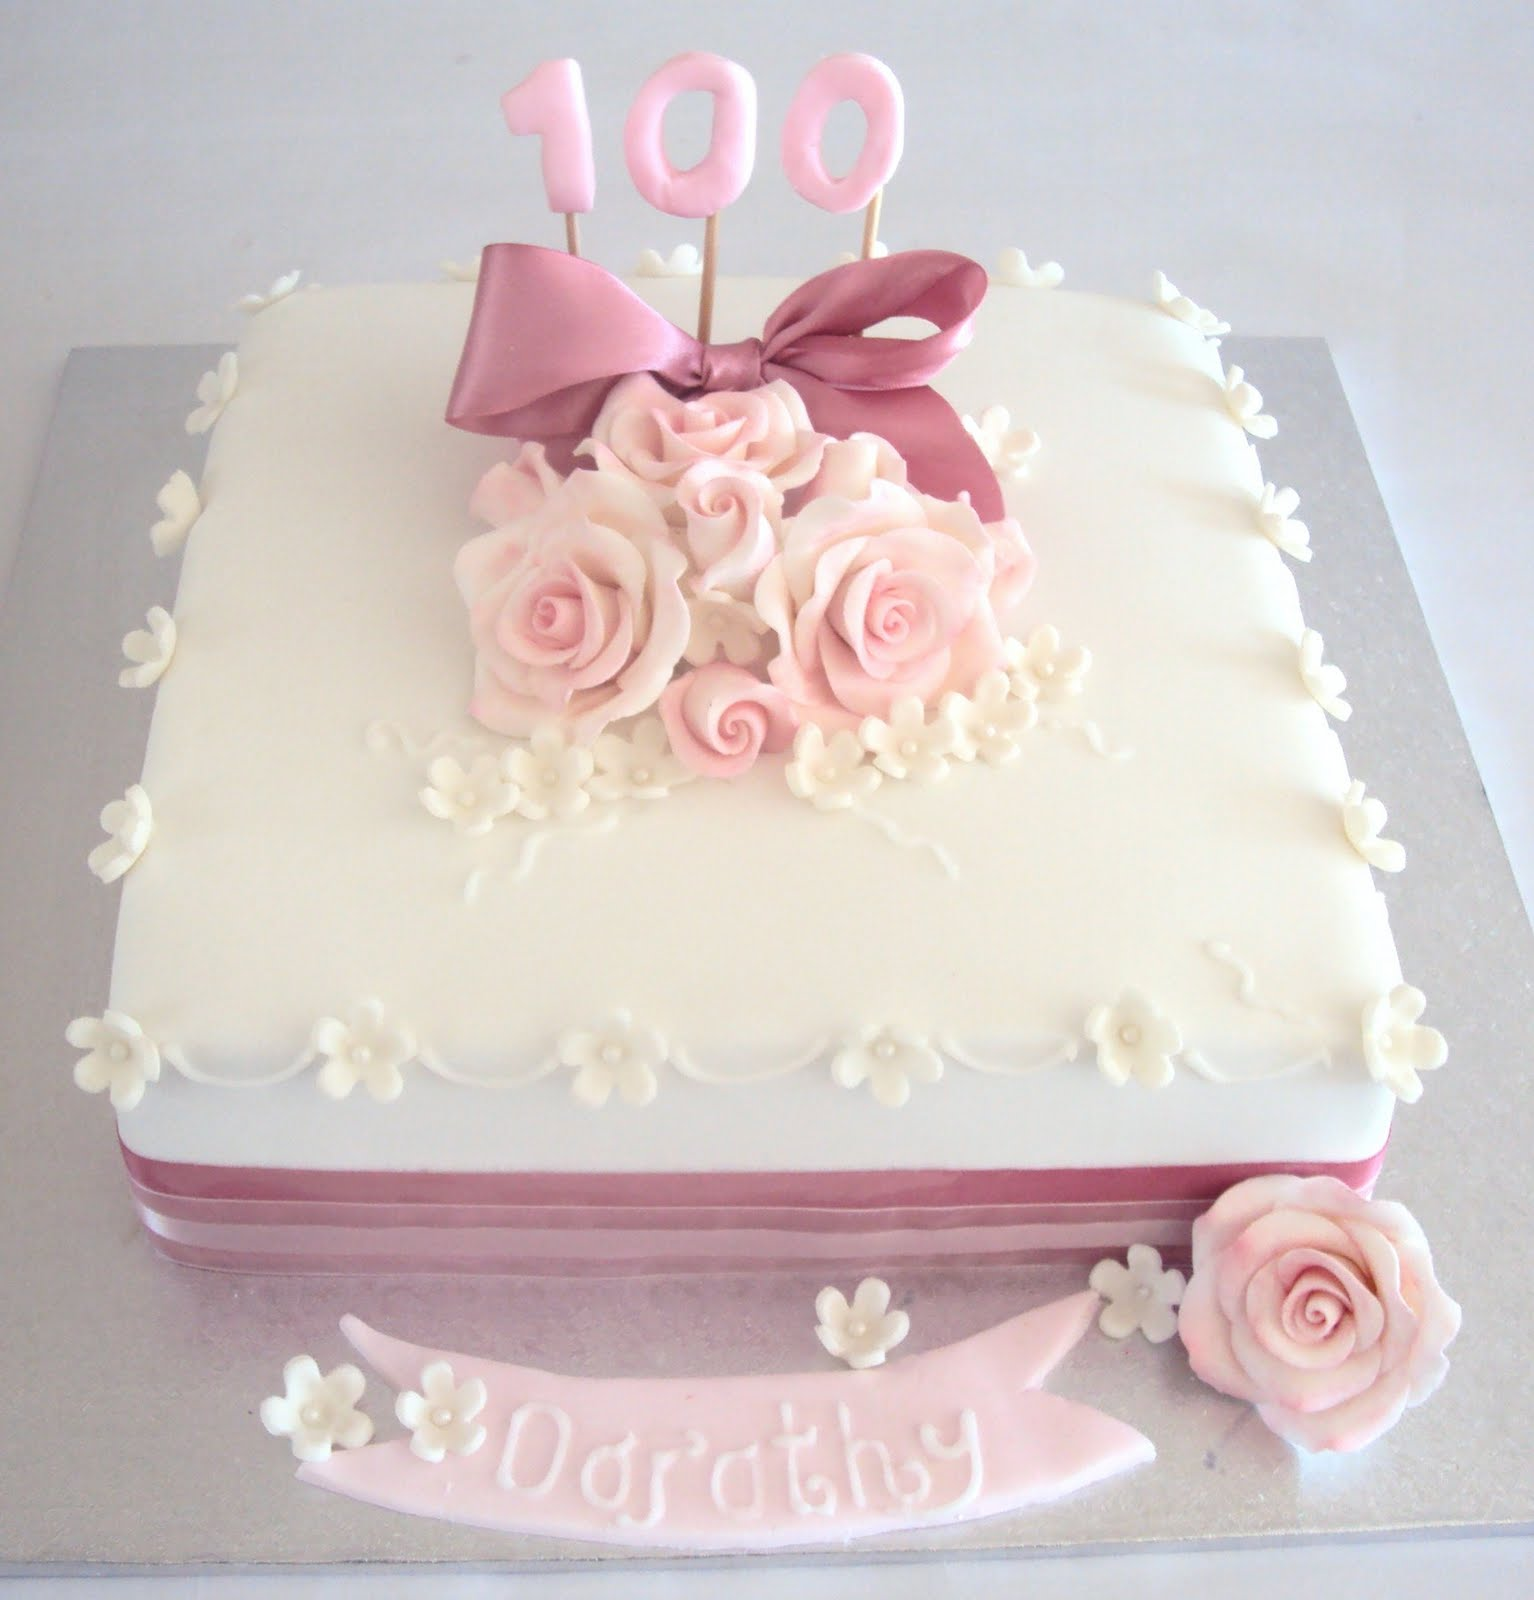 Flutterbye Cakes 100th Birthday